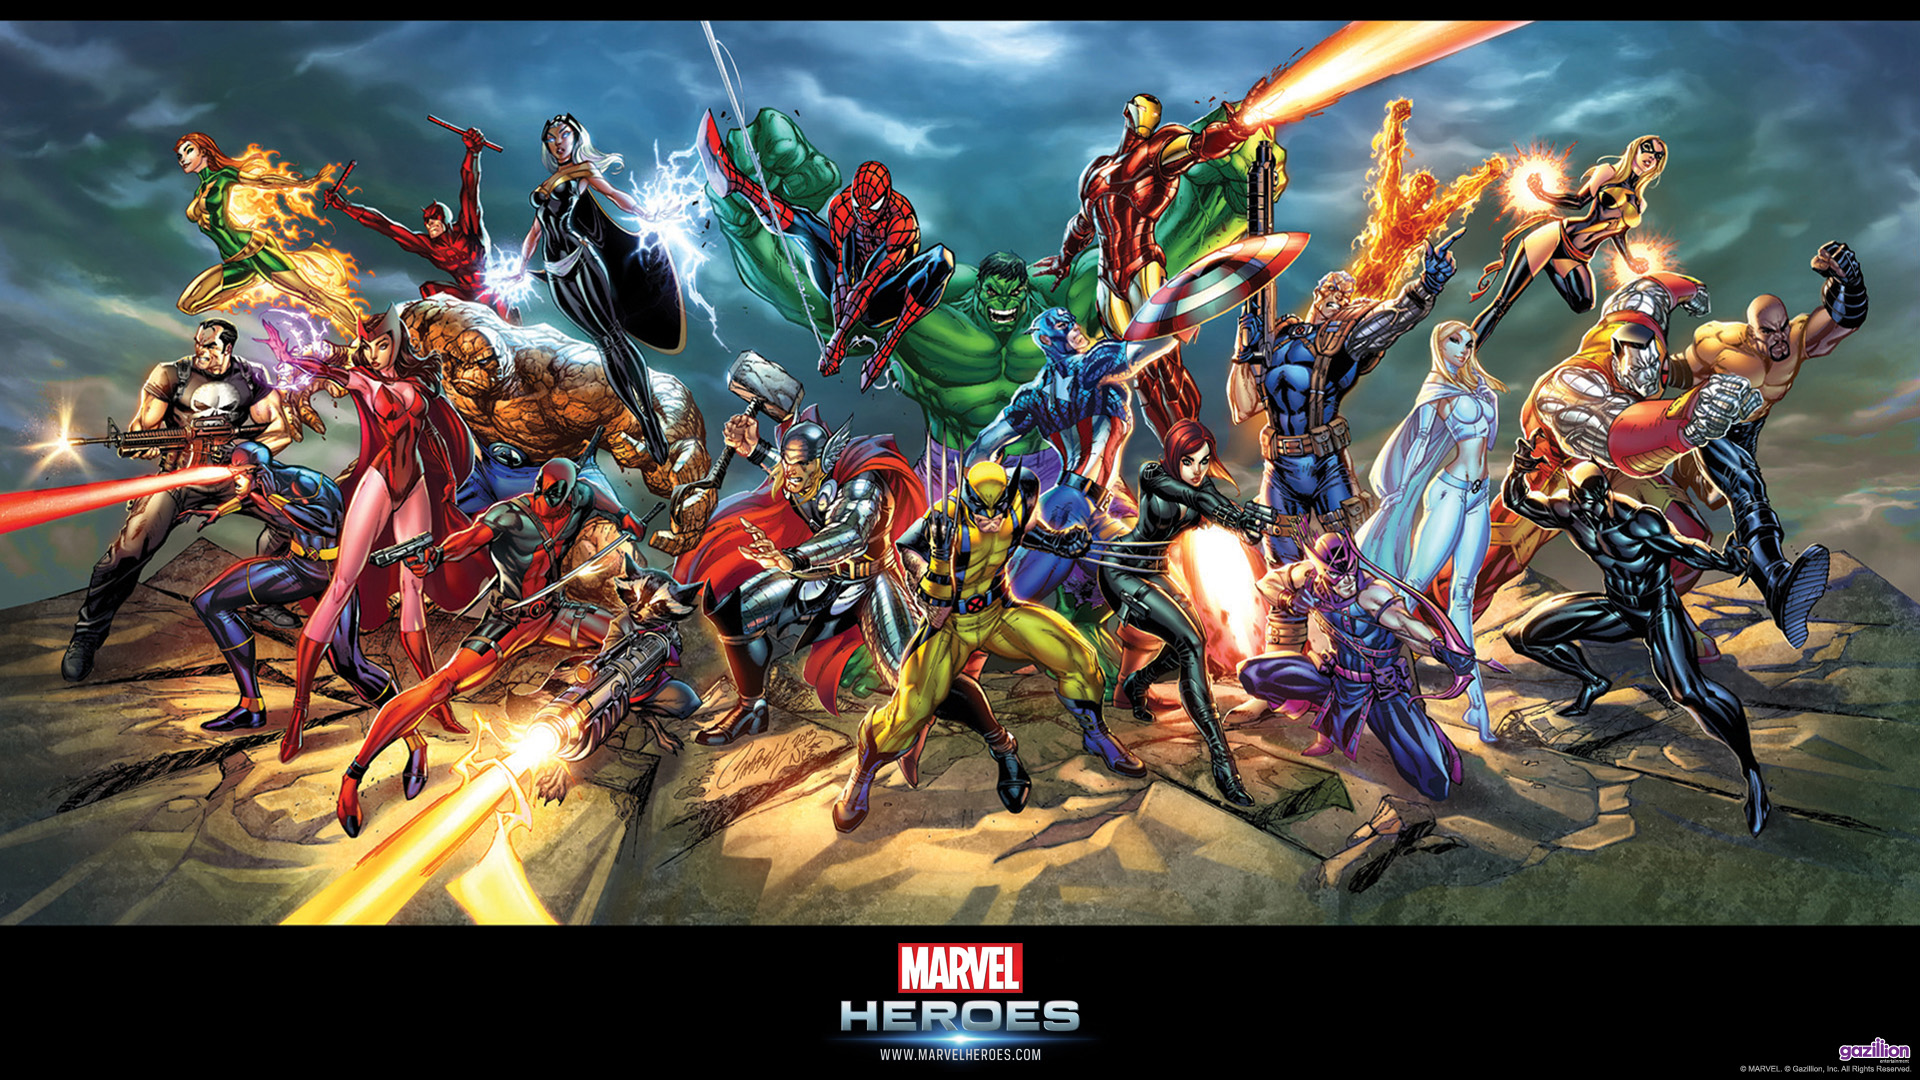 Source httpslotsmarvelcomepic marvel heroes wallpapers 1920x1080